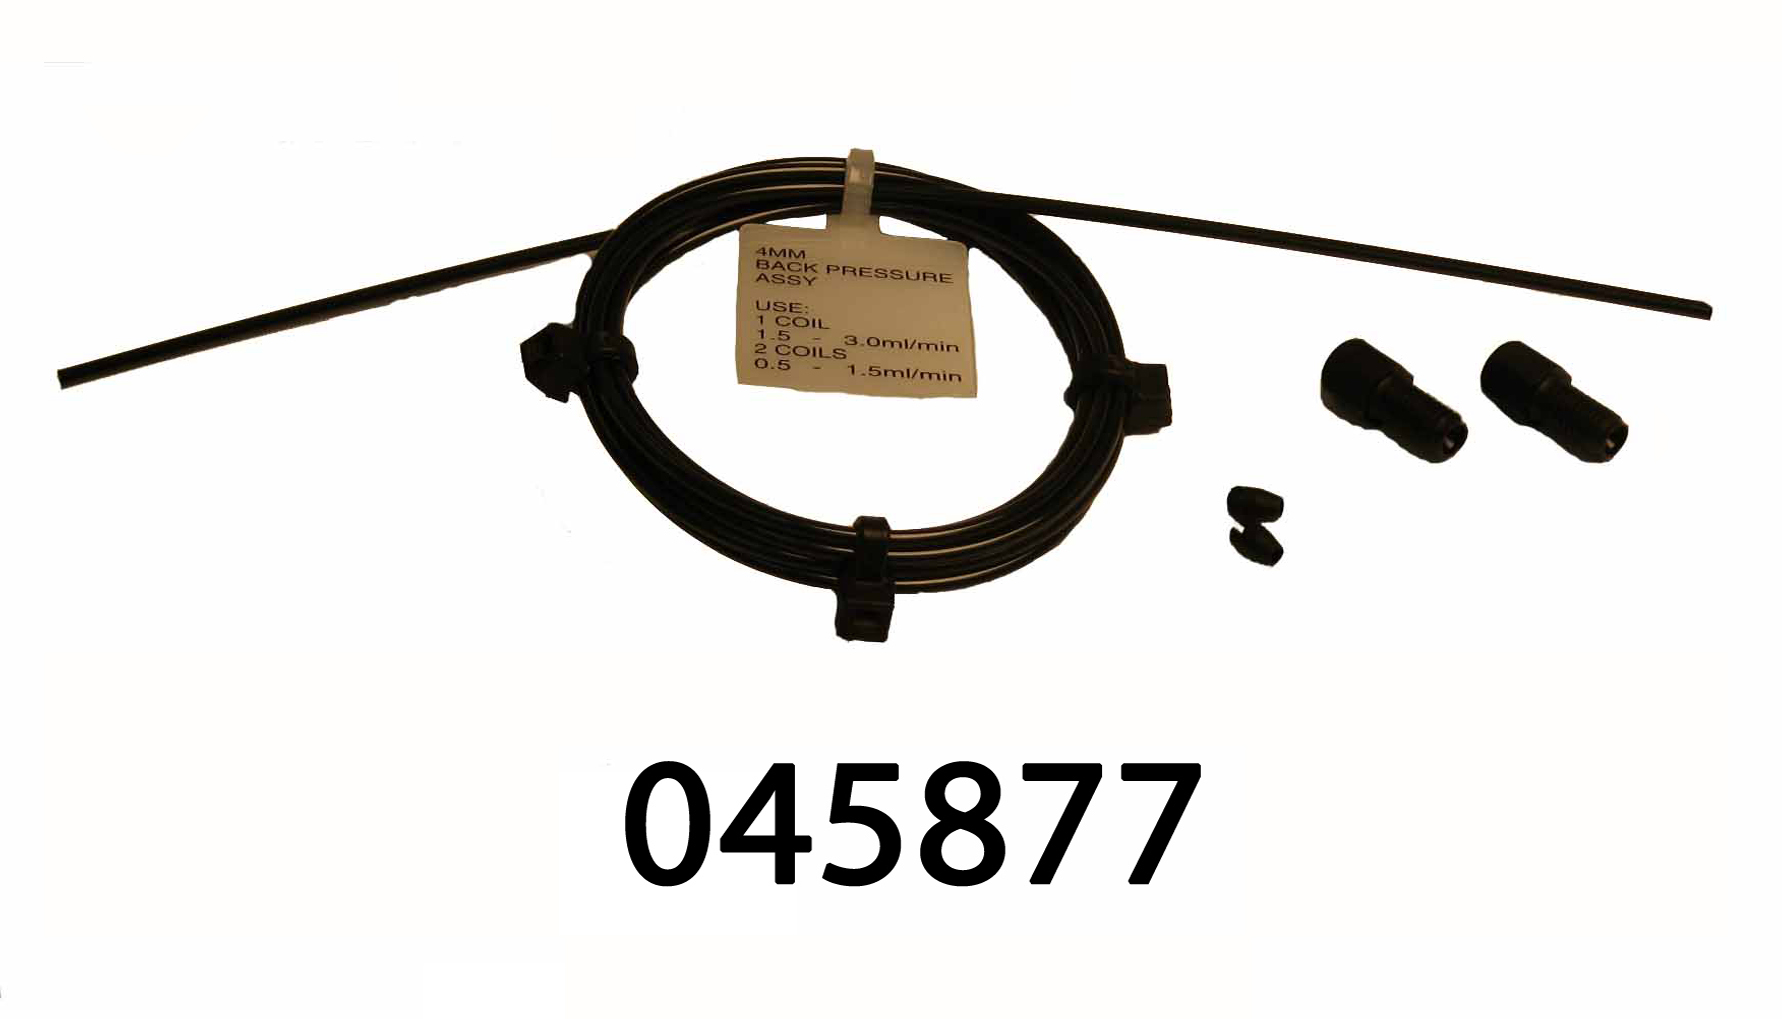 045877 Backpressure coil for 4 mm suppressor